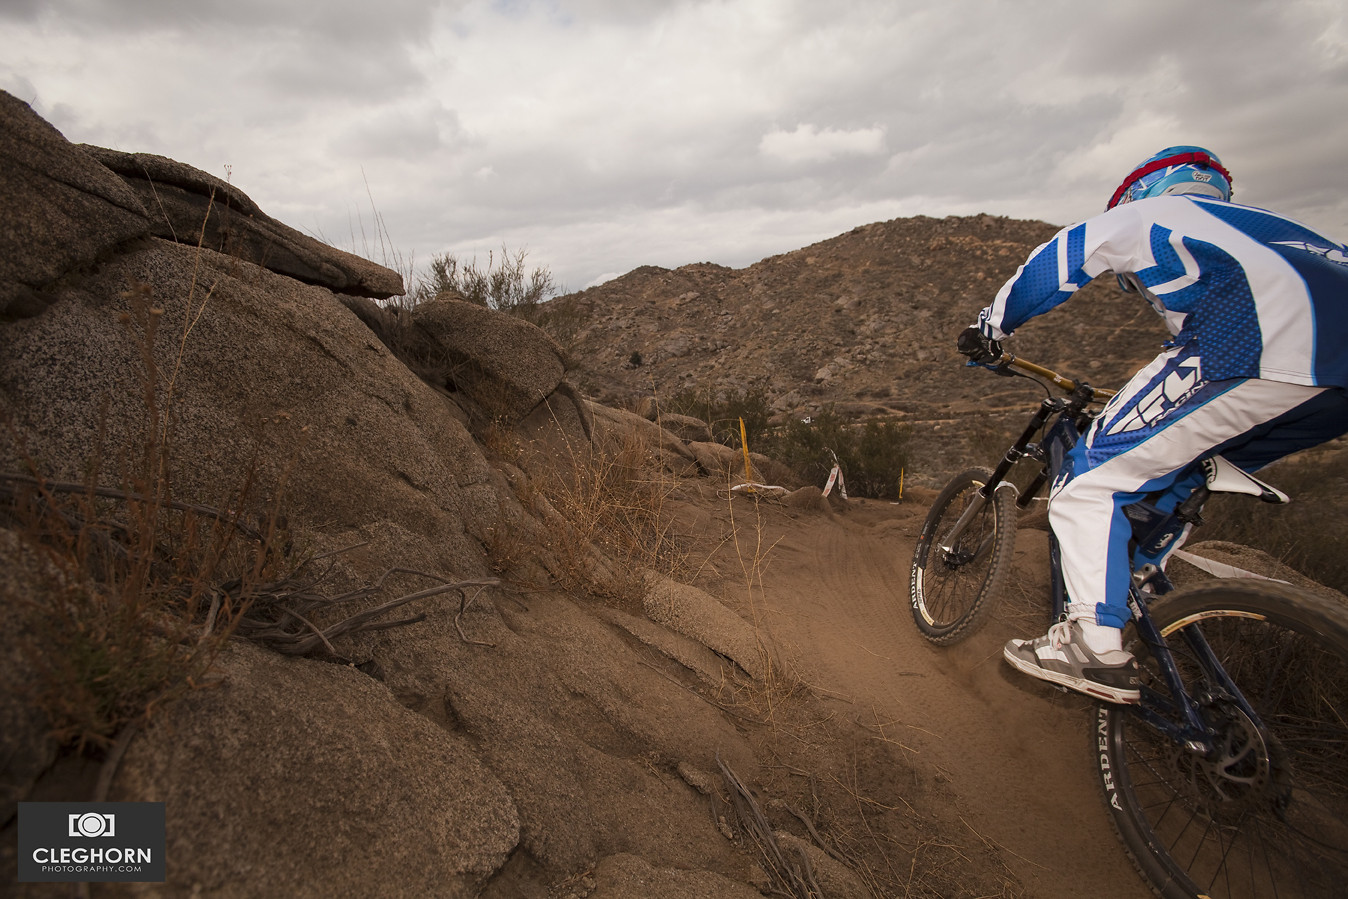 Downhill! - Cleghorn Photography - Mountain Biking Pictures - Vital MTB